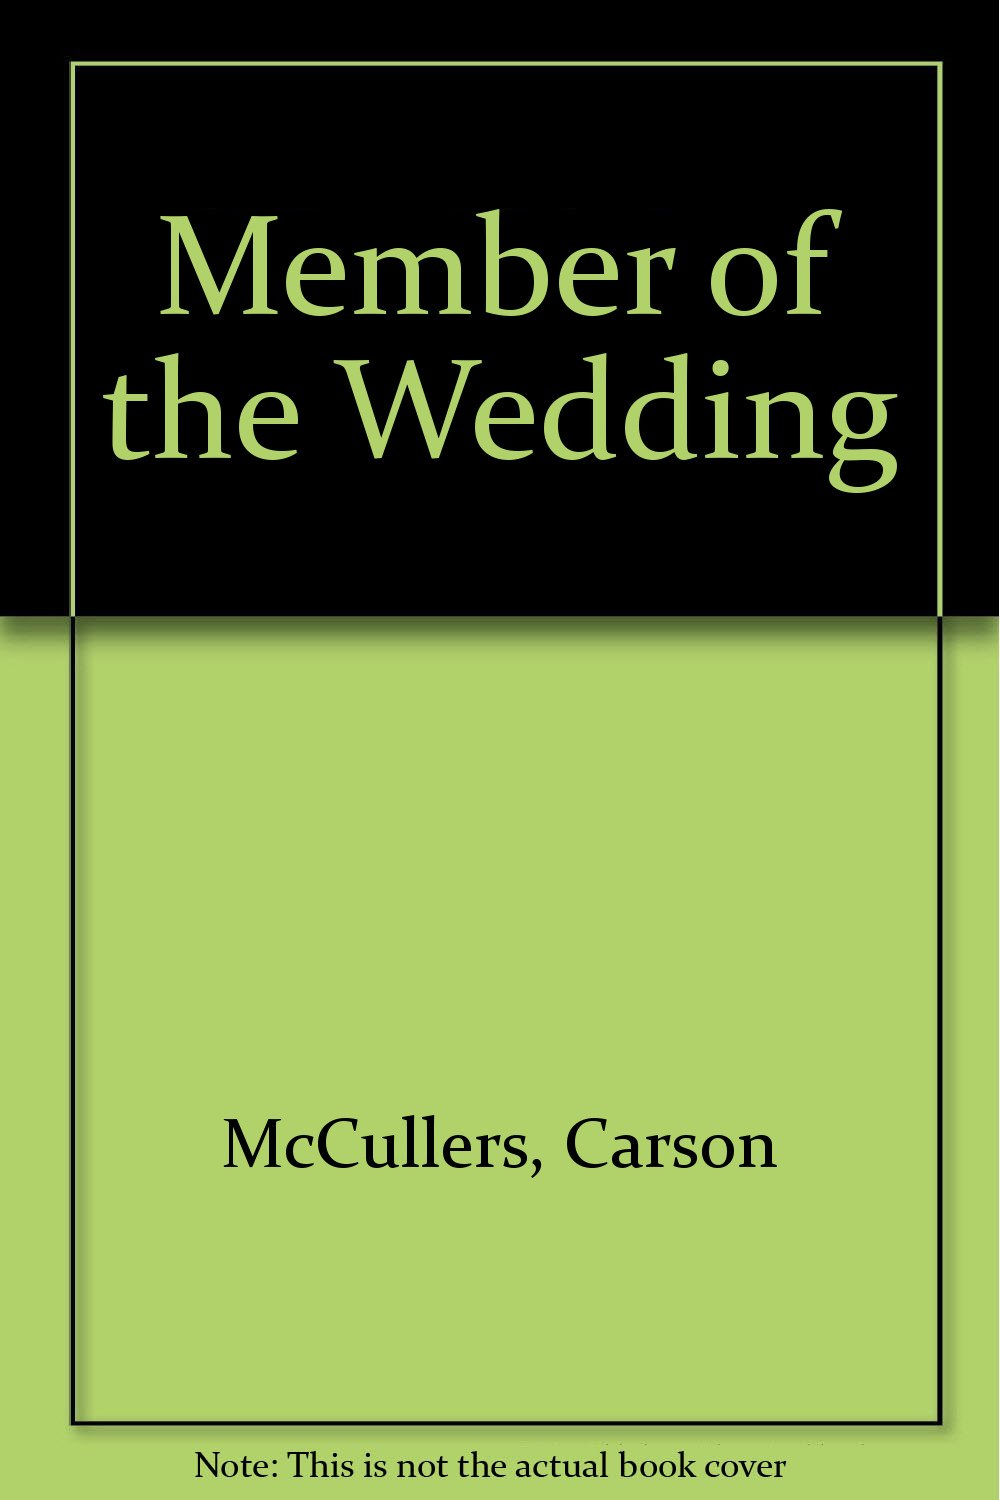 Member of the Wedding